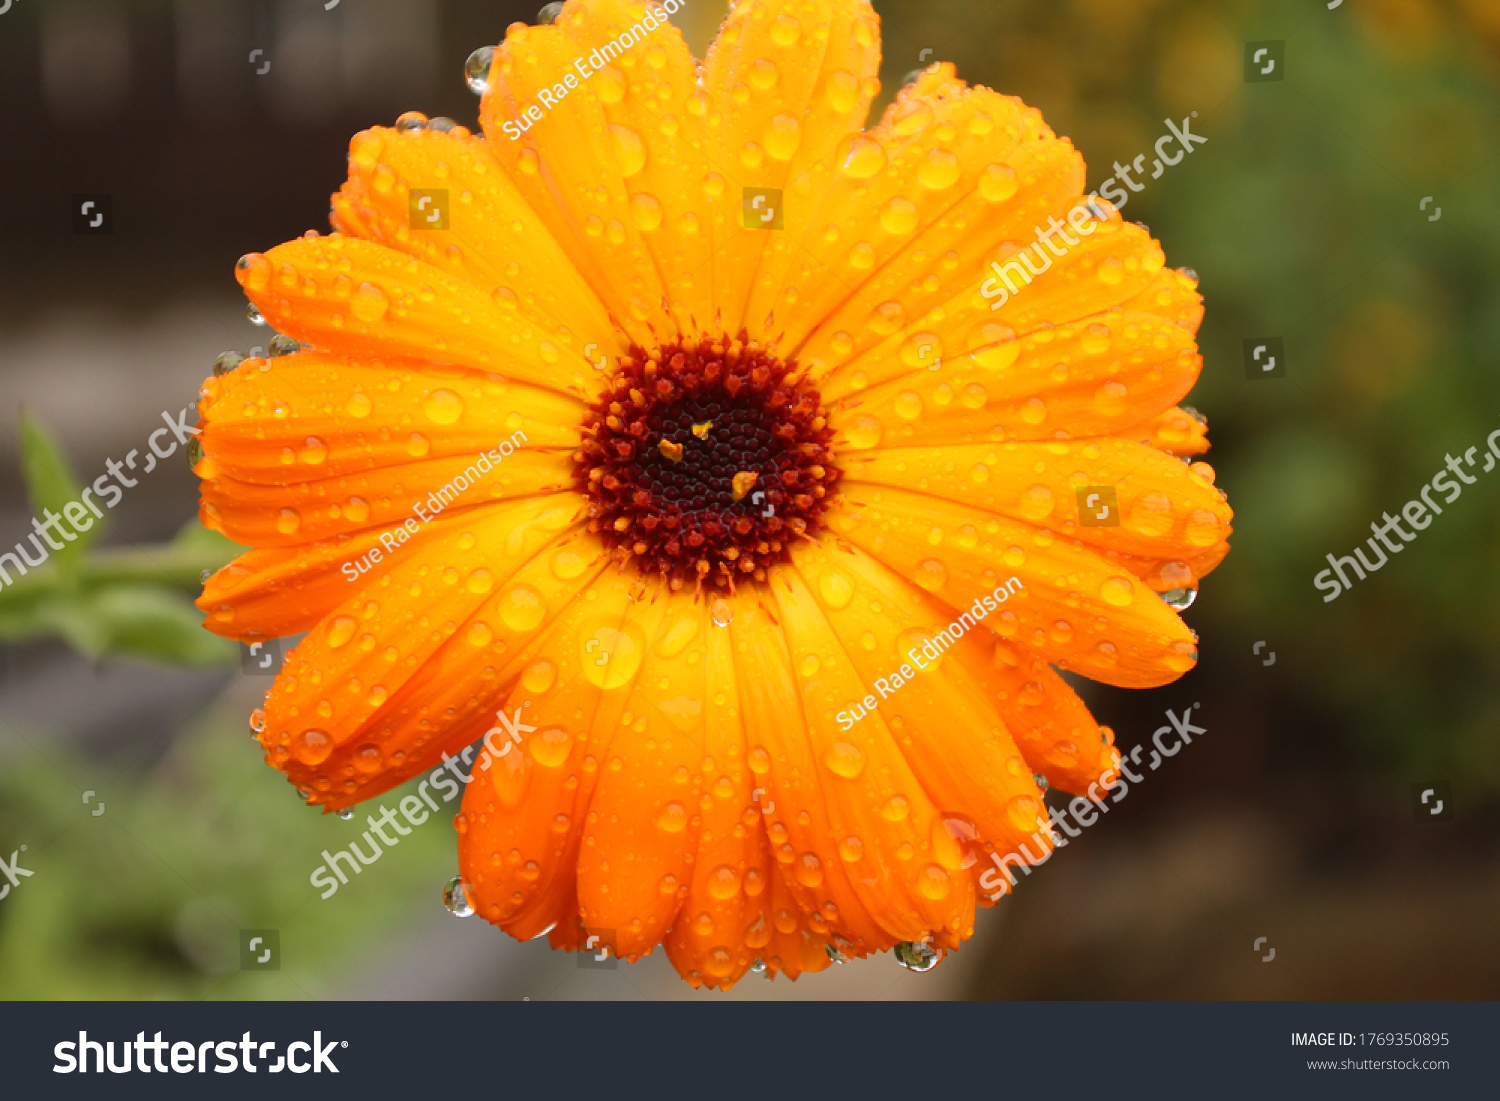 stock-photo-close-up-of-a-marigold-flowe